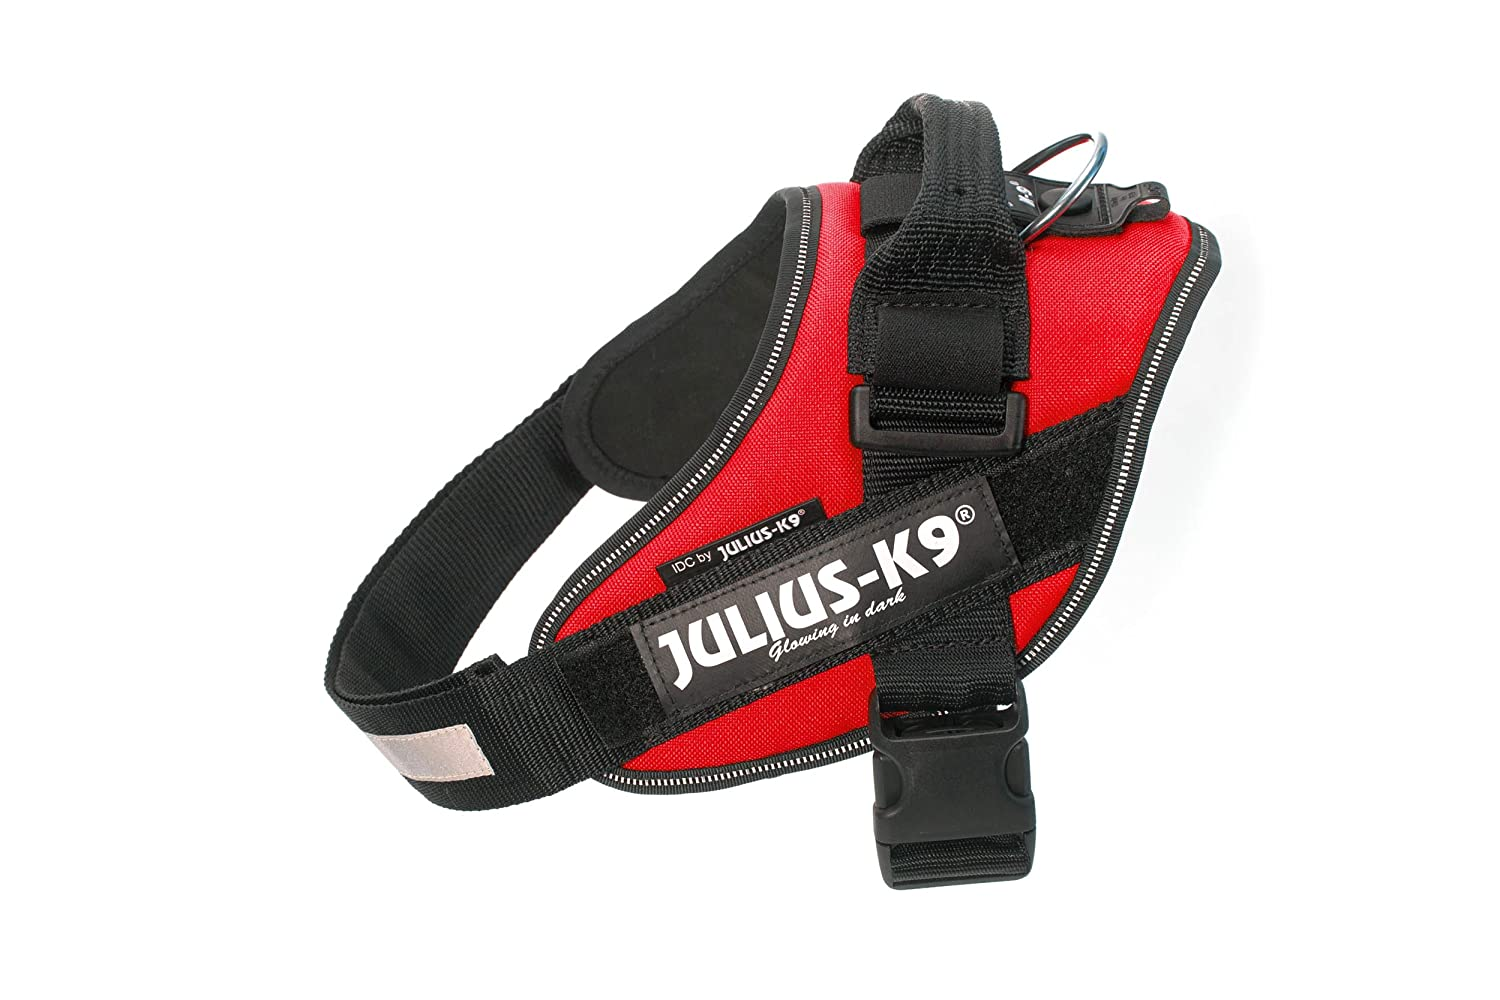 Julius k9 16IDC-R-1 IDC Power Harness, Tamaño 1, Rojo K9-Sport